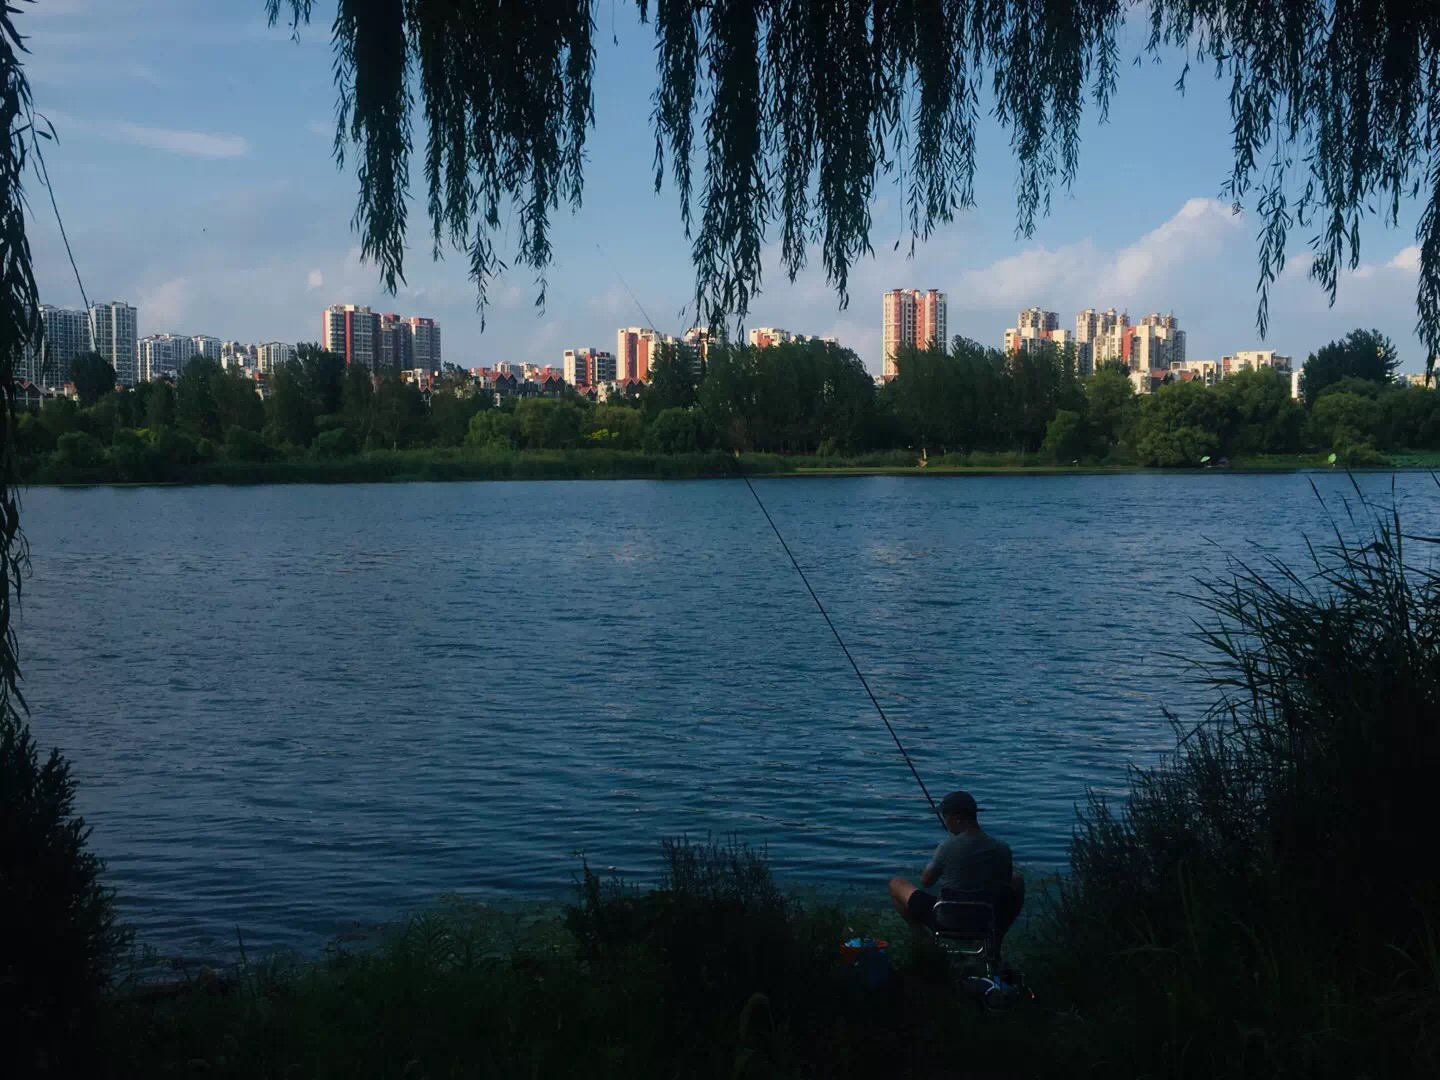 man fishing on lake with city in background